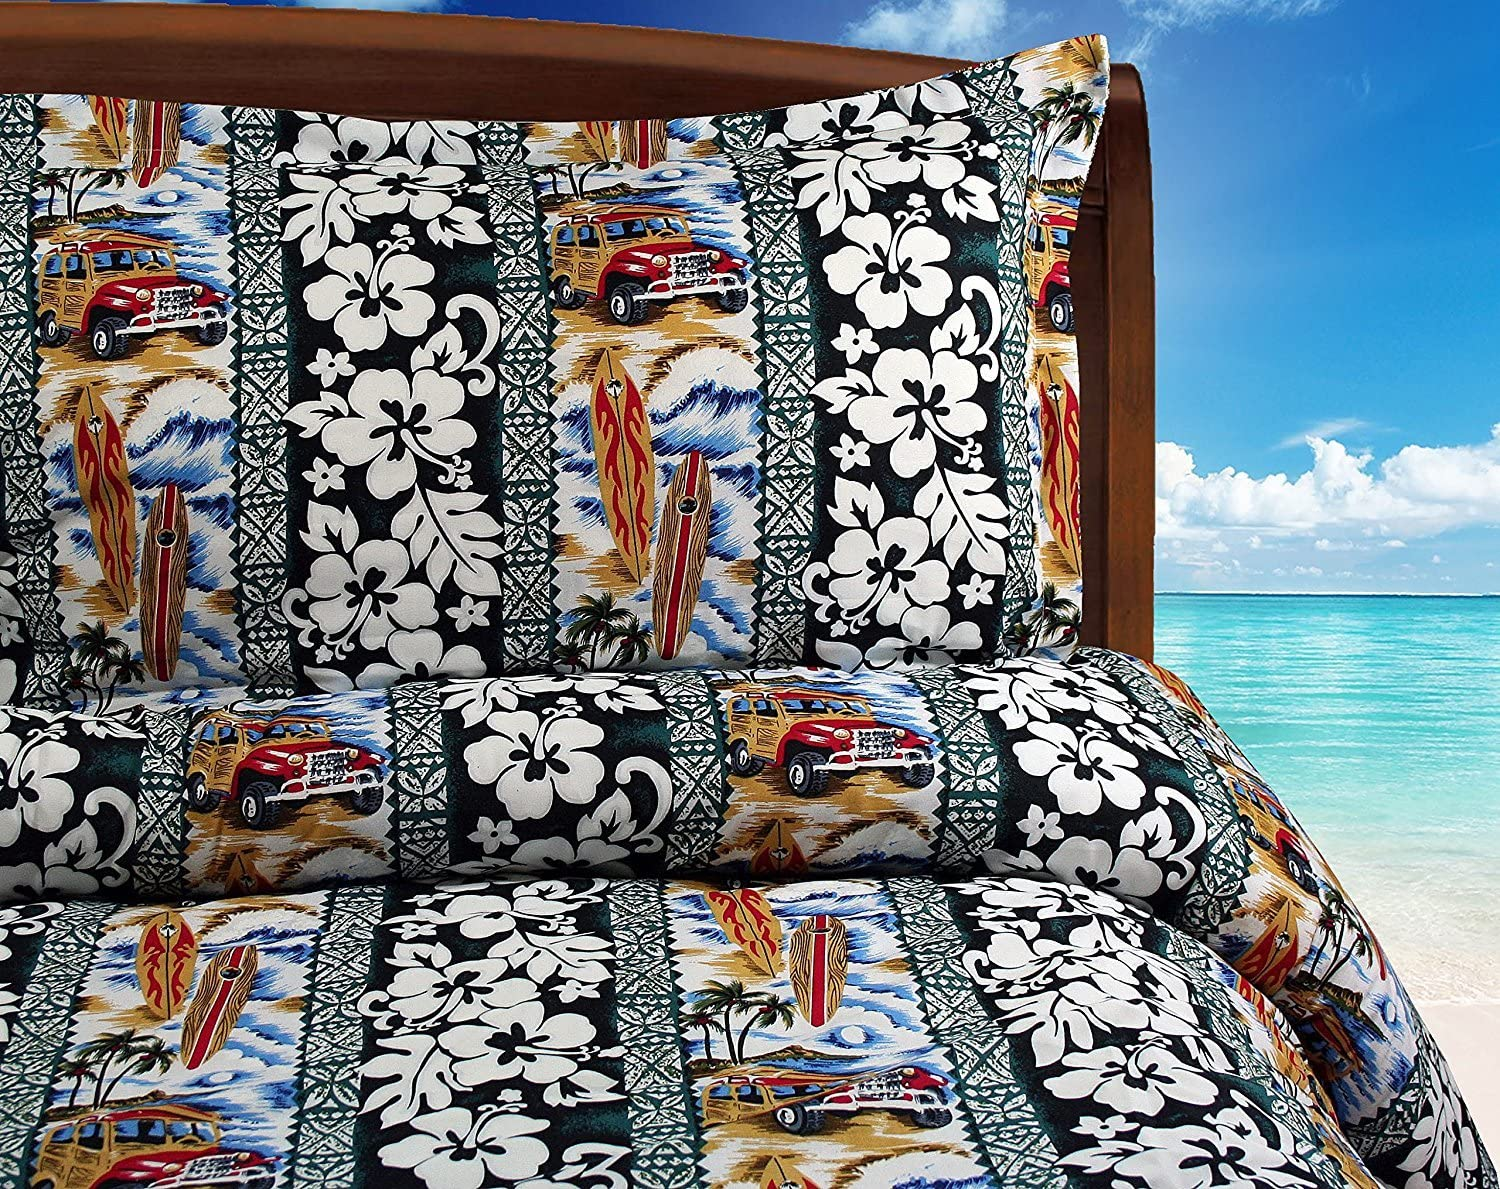 Surf Duvet Cover -- Woody Cars and Surfboards with Pillowcases (Queen / Full)